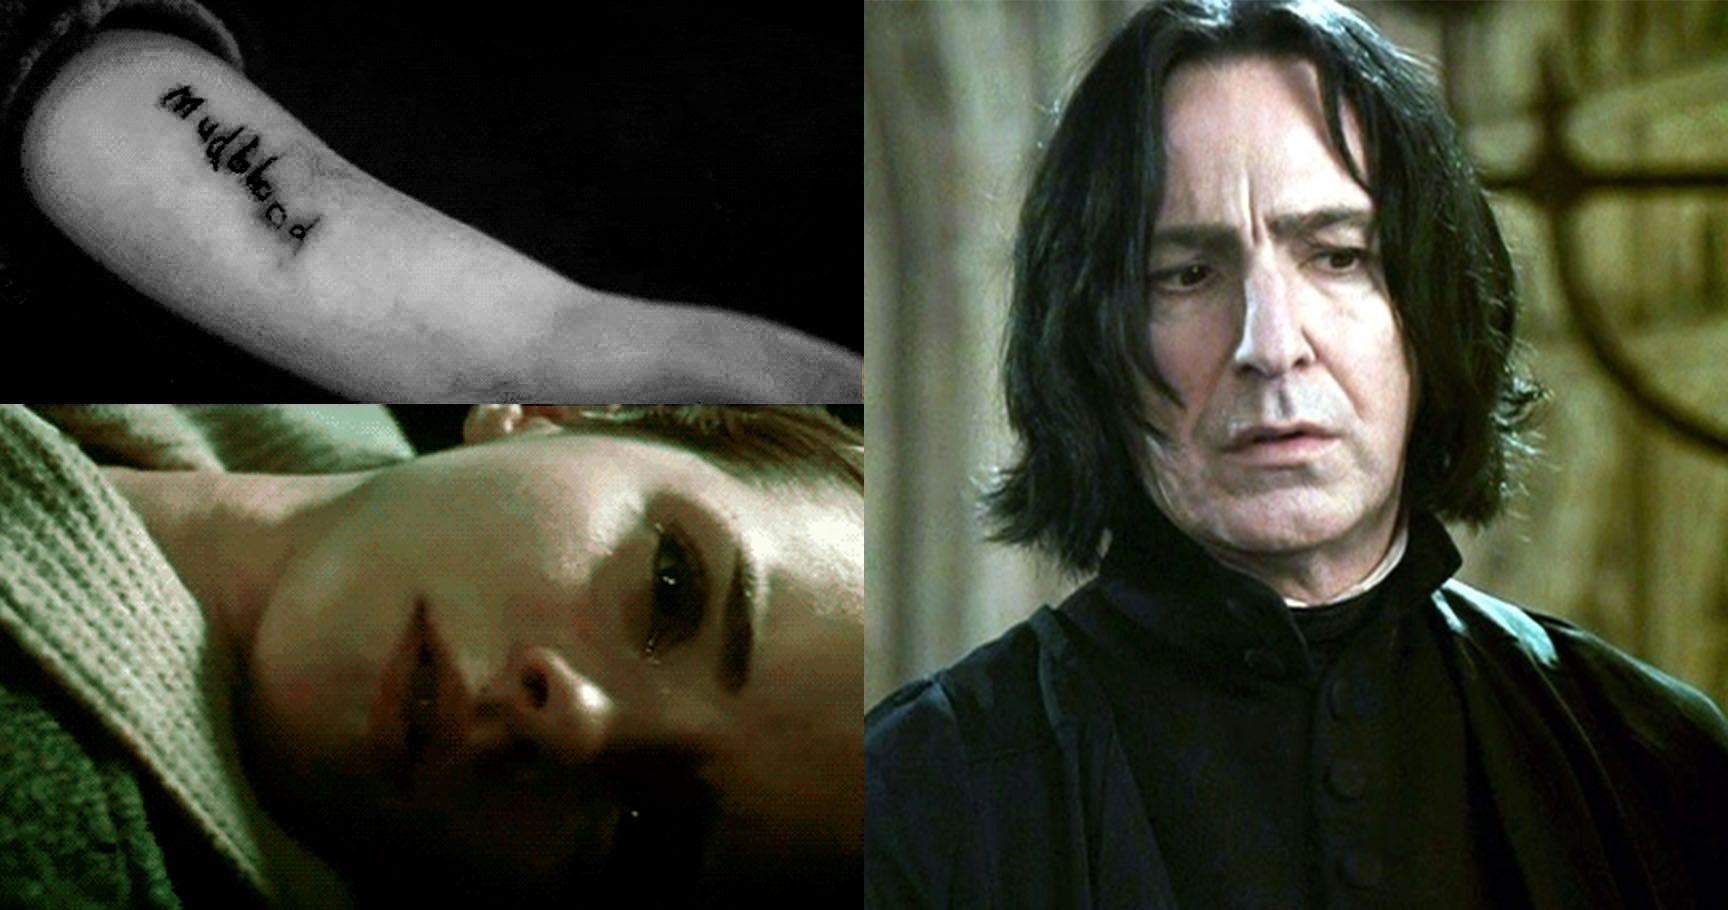 15 Times 'Harry Potter' Got Disturbing AF Without Us Realizing It